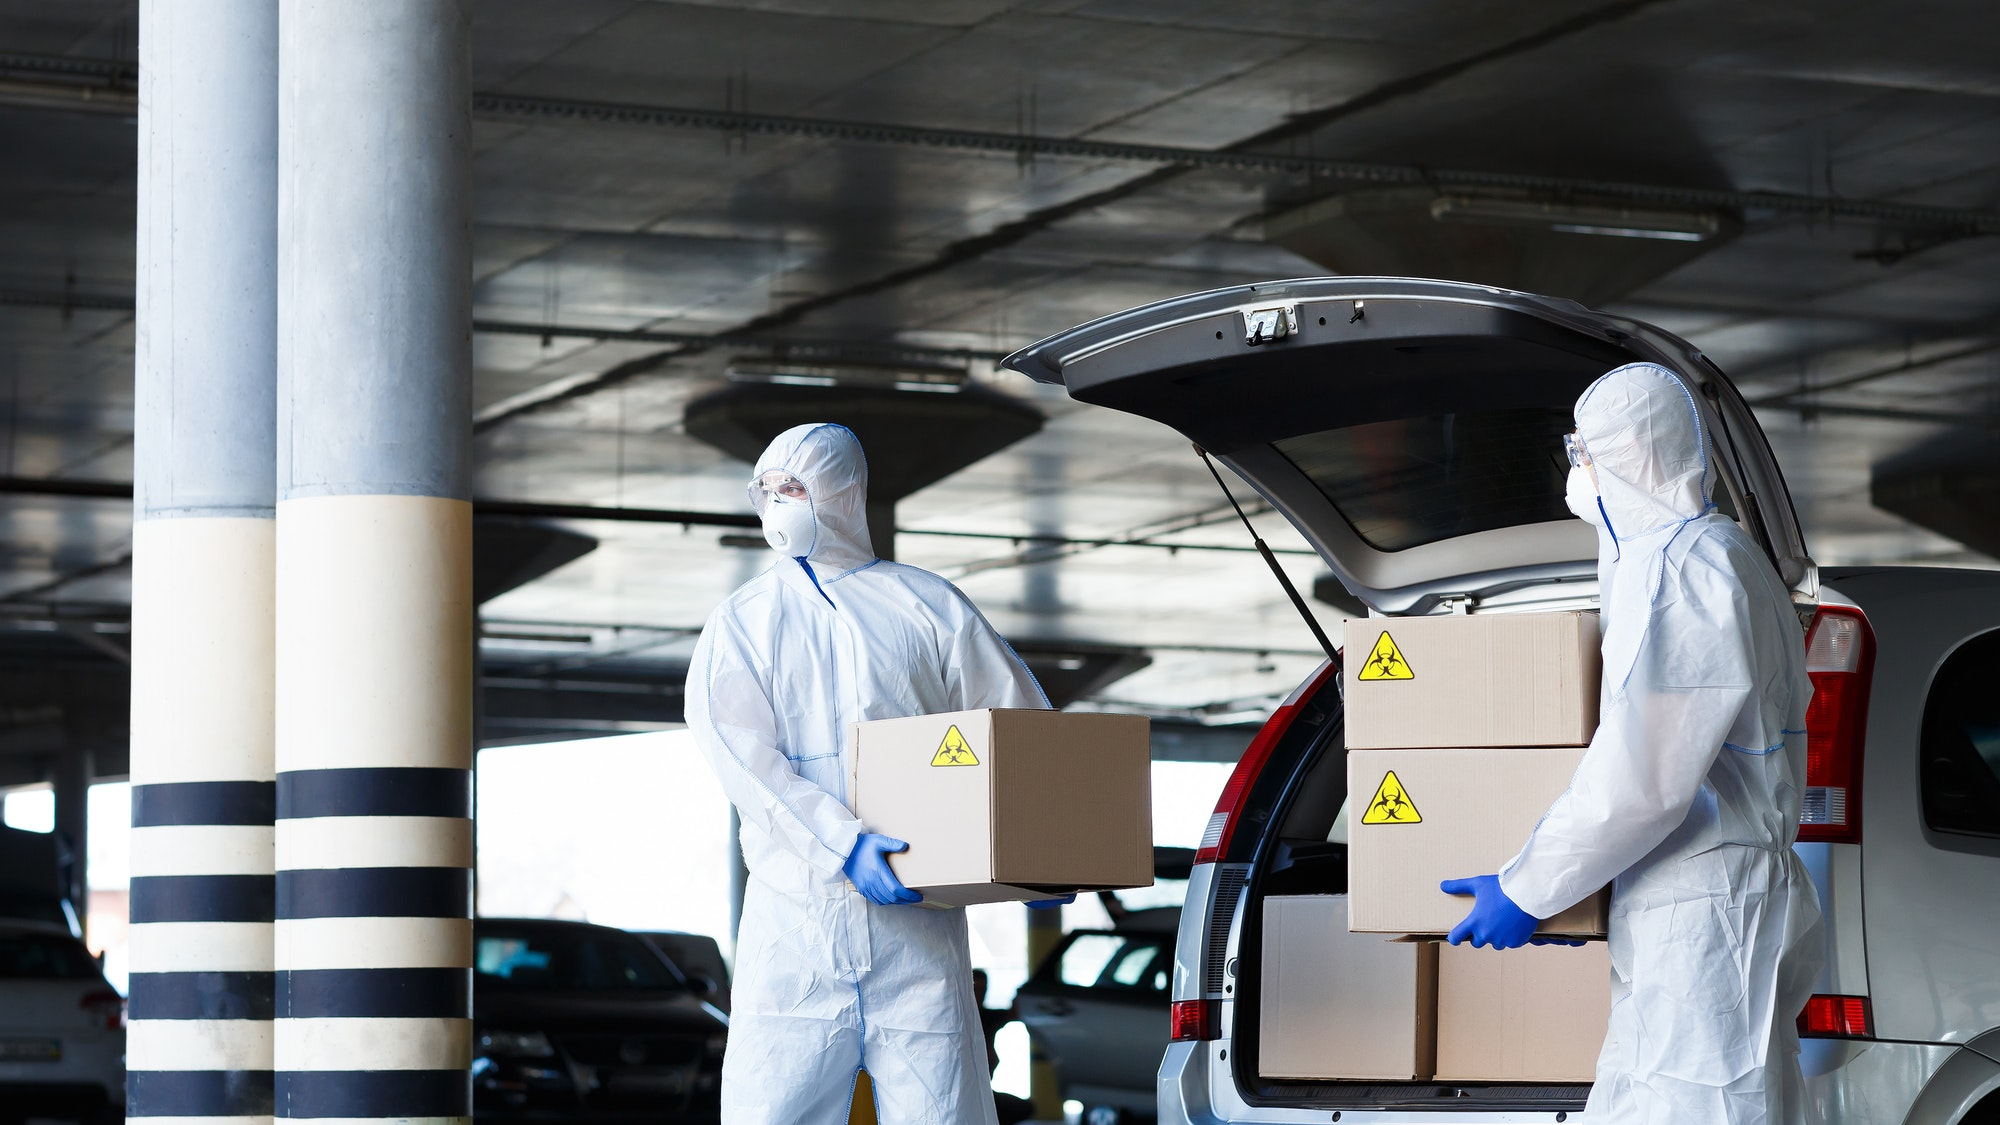 Danger business of trucking, delivering in virus protective suit